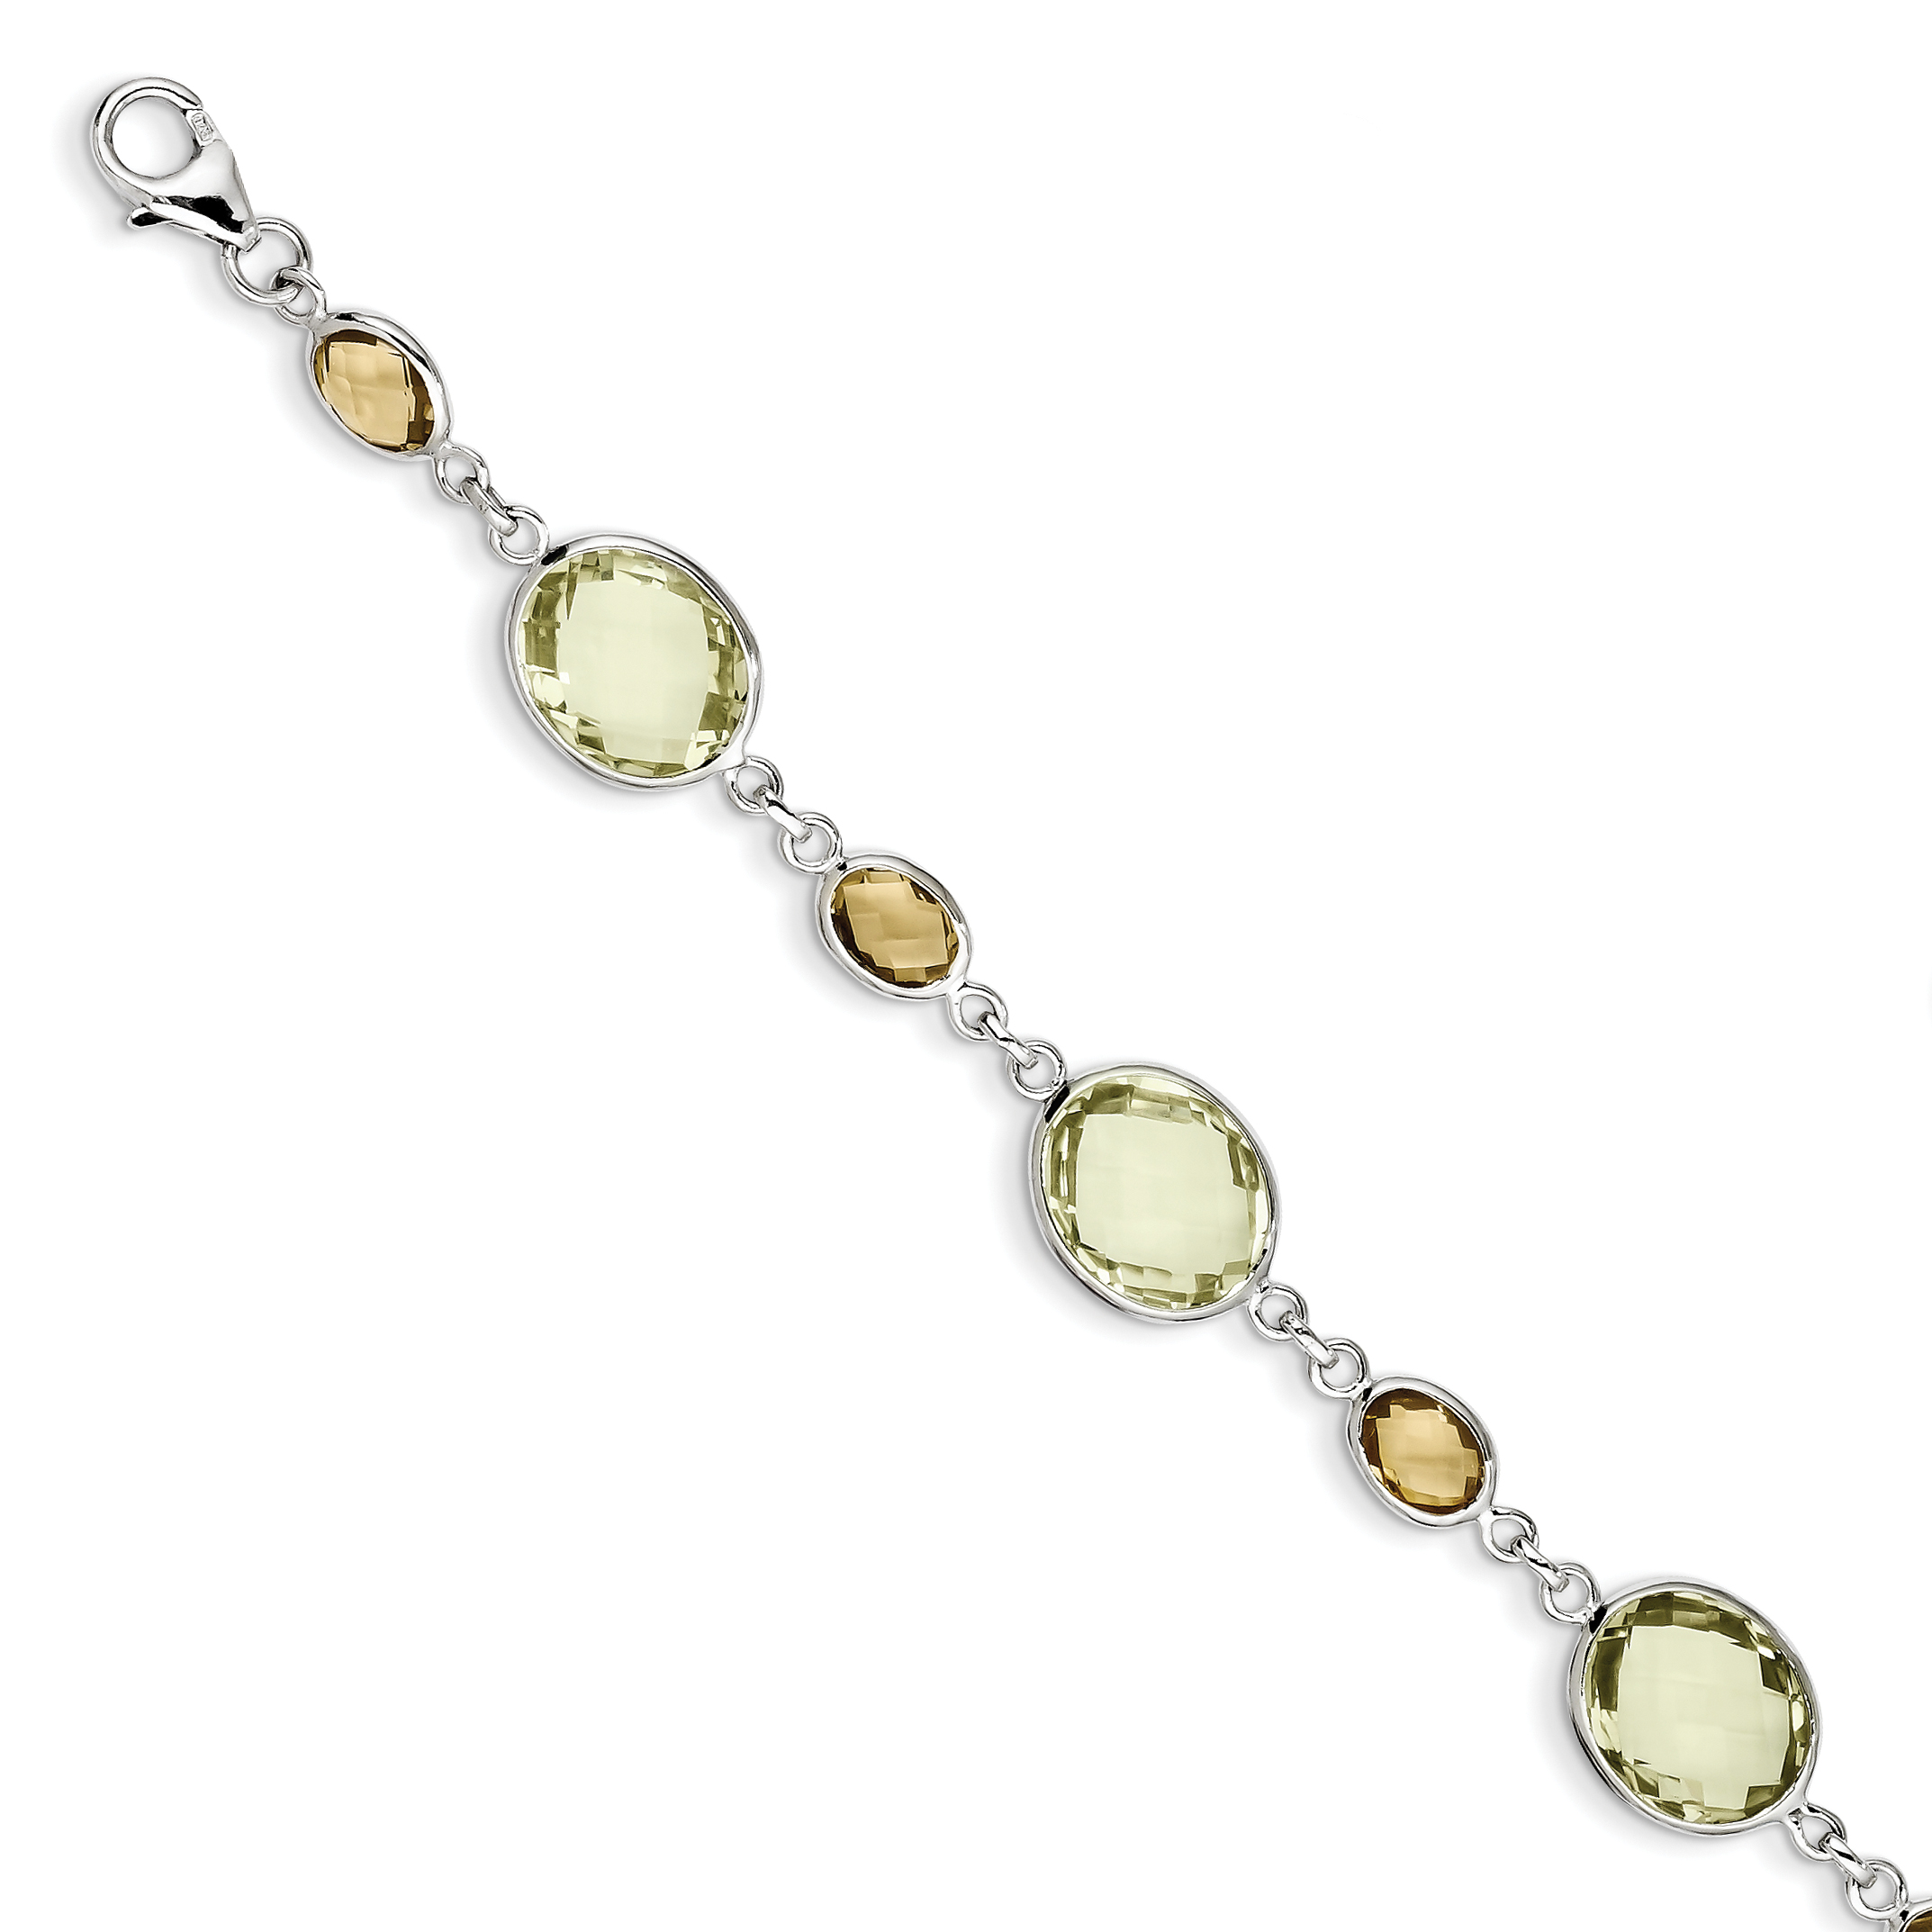 Sterling Silver 7.5in. Lemon Quartz and Citrine Oval Bracelet by Core Silver